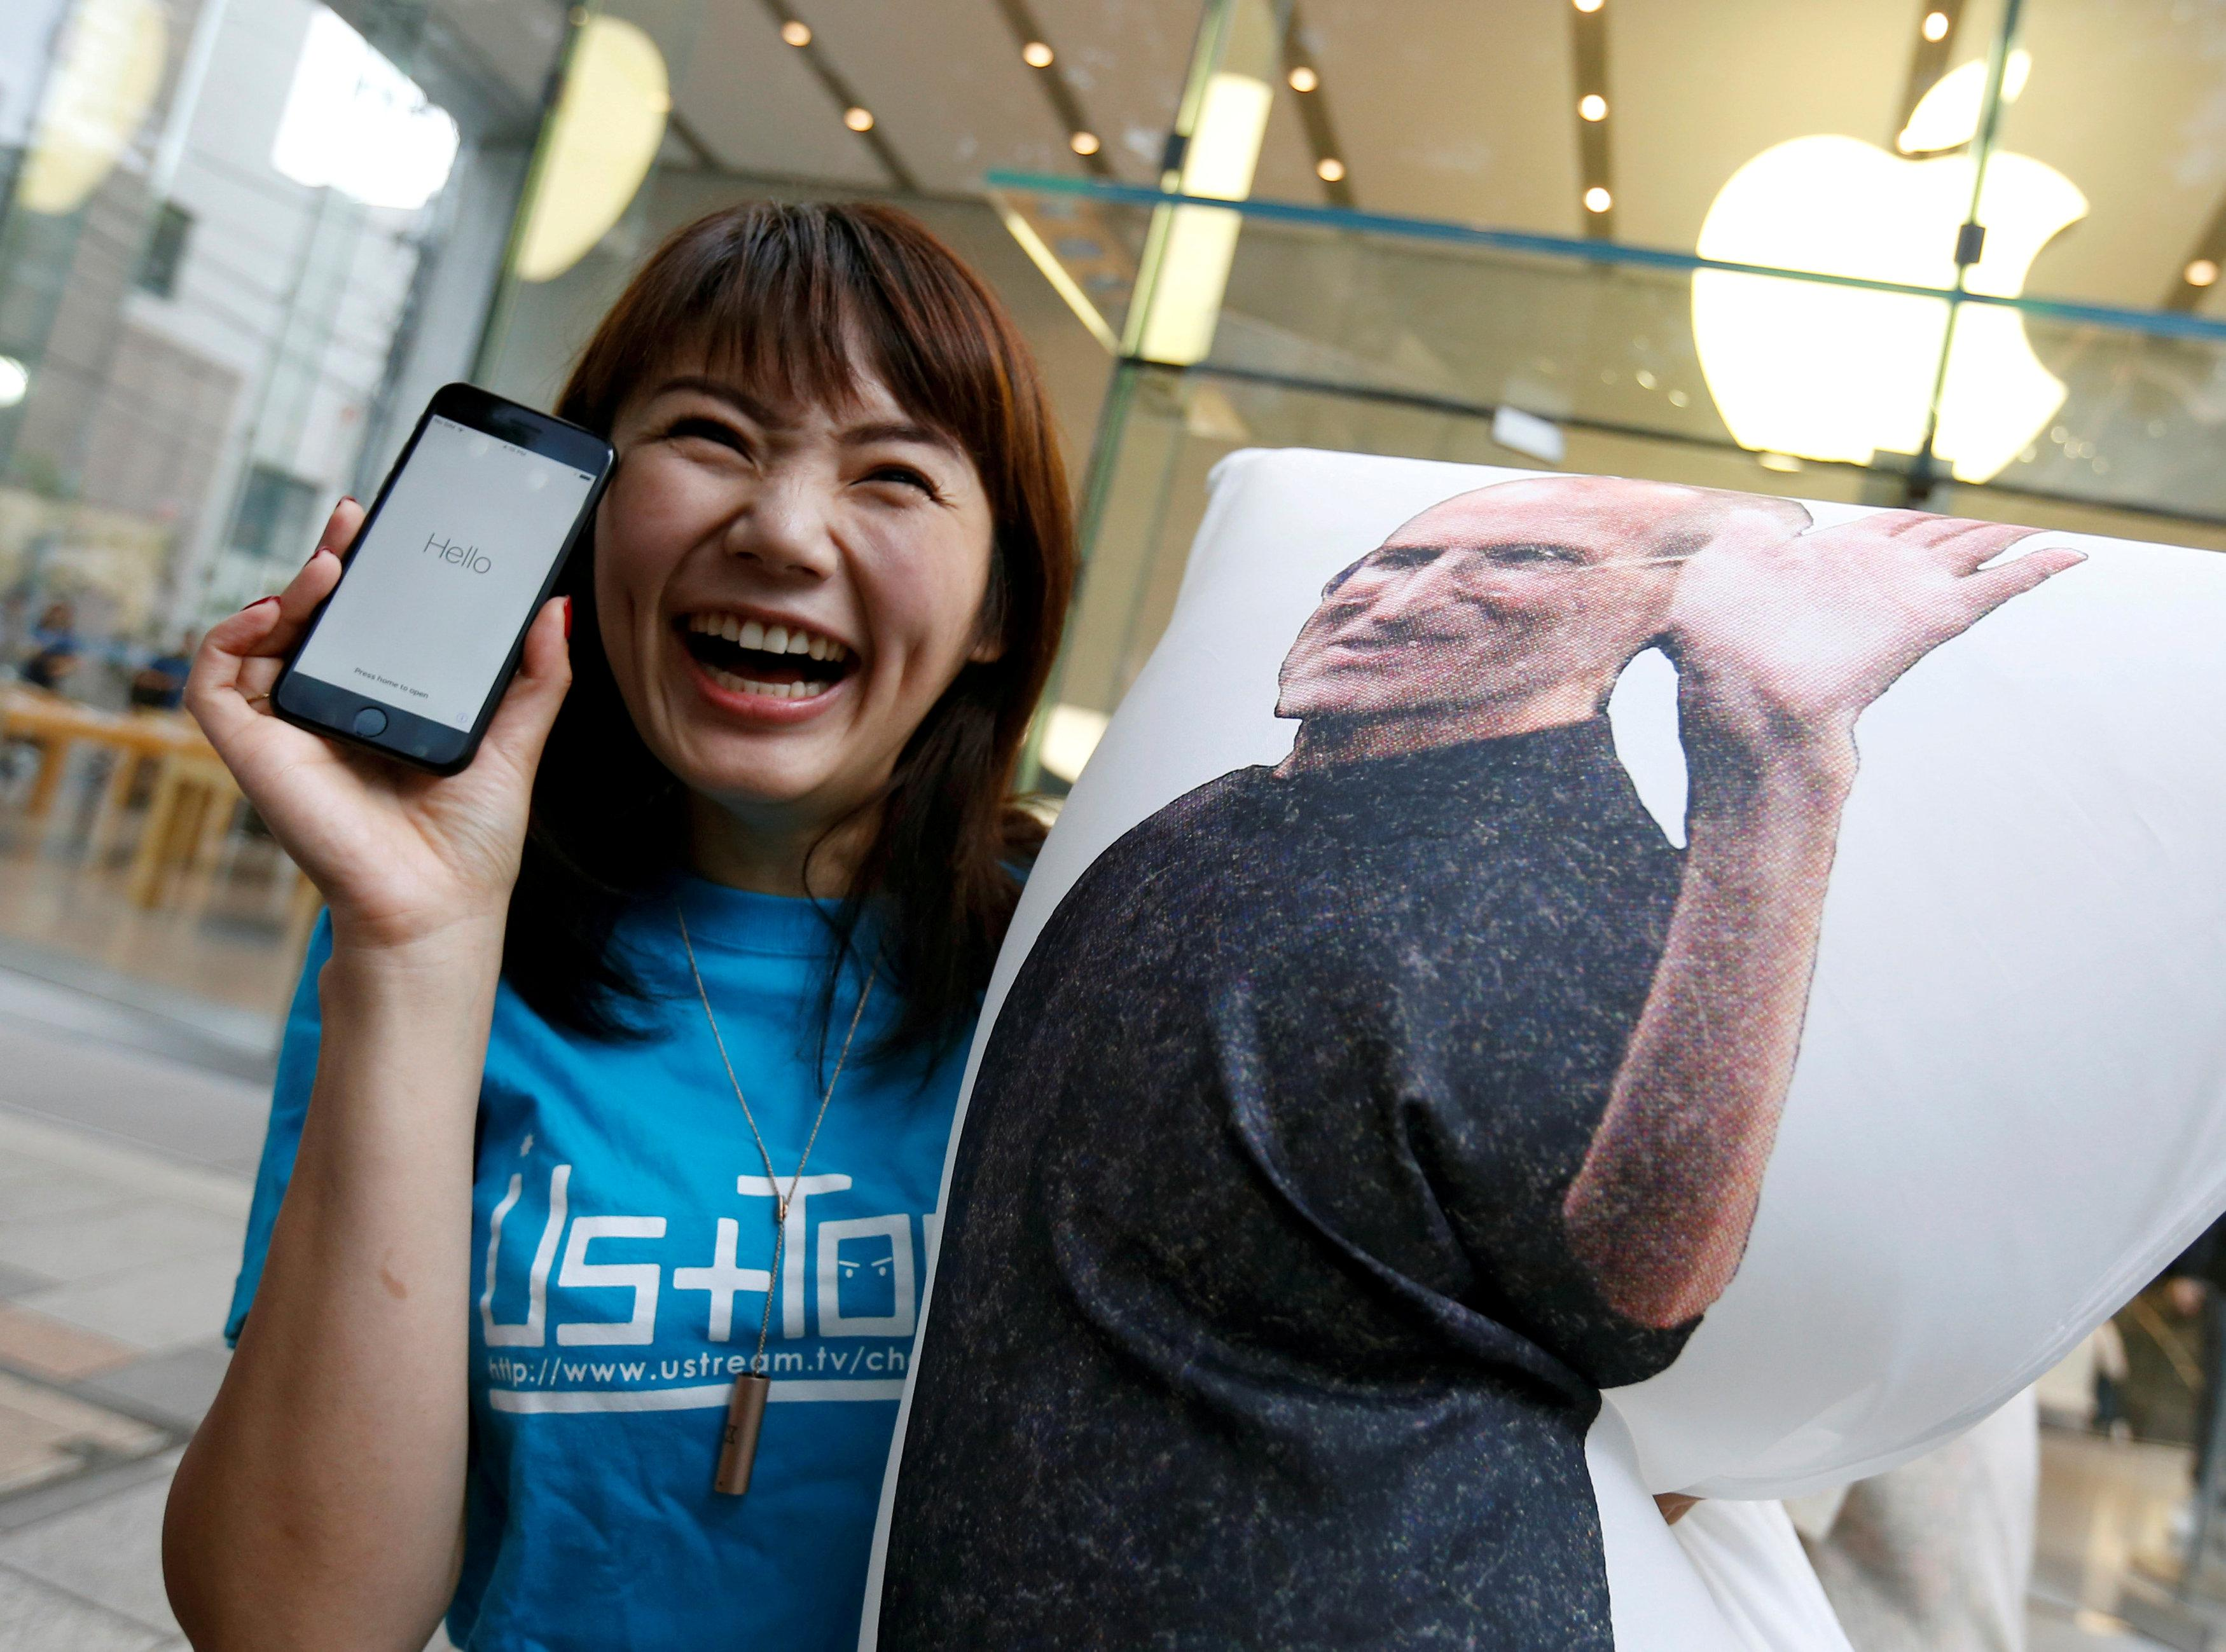 Ayano Tominaga poses with her Apple's new iPhone 7 after purchasing it at the Apple Store at Tokyo's Omotesando shopping district, Japan, September 16, 2016.    Issei Kato